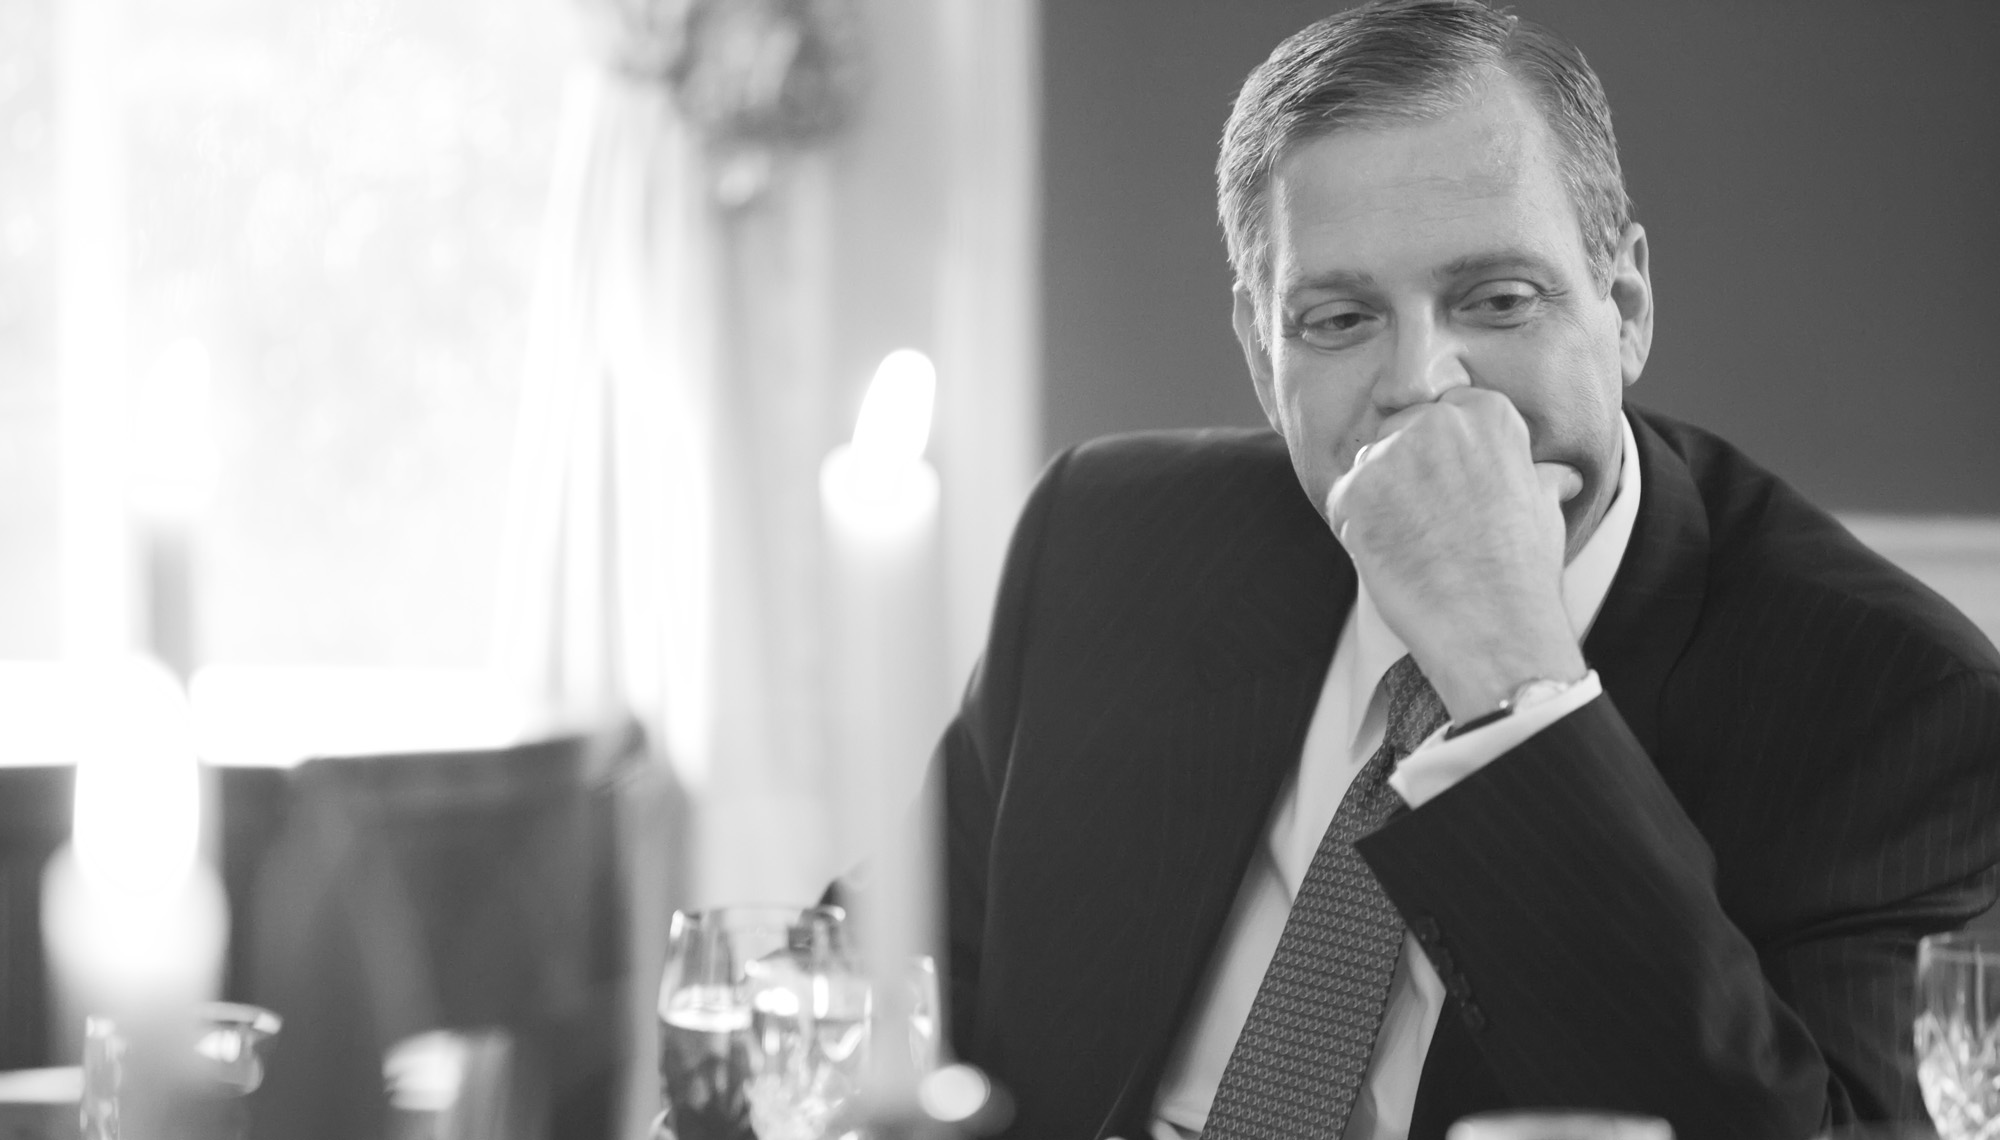 Twenty years and counting: Mohler reflects on his presidency of Southern Seminary